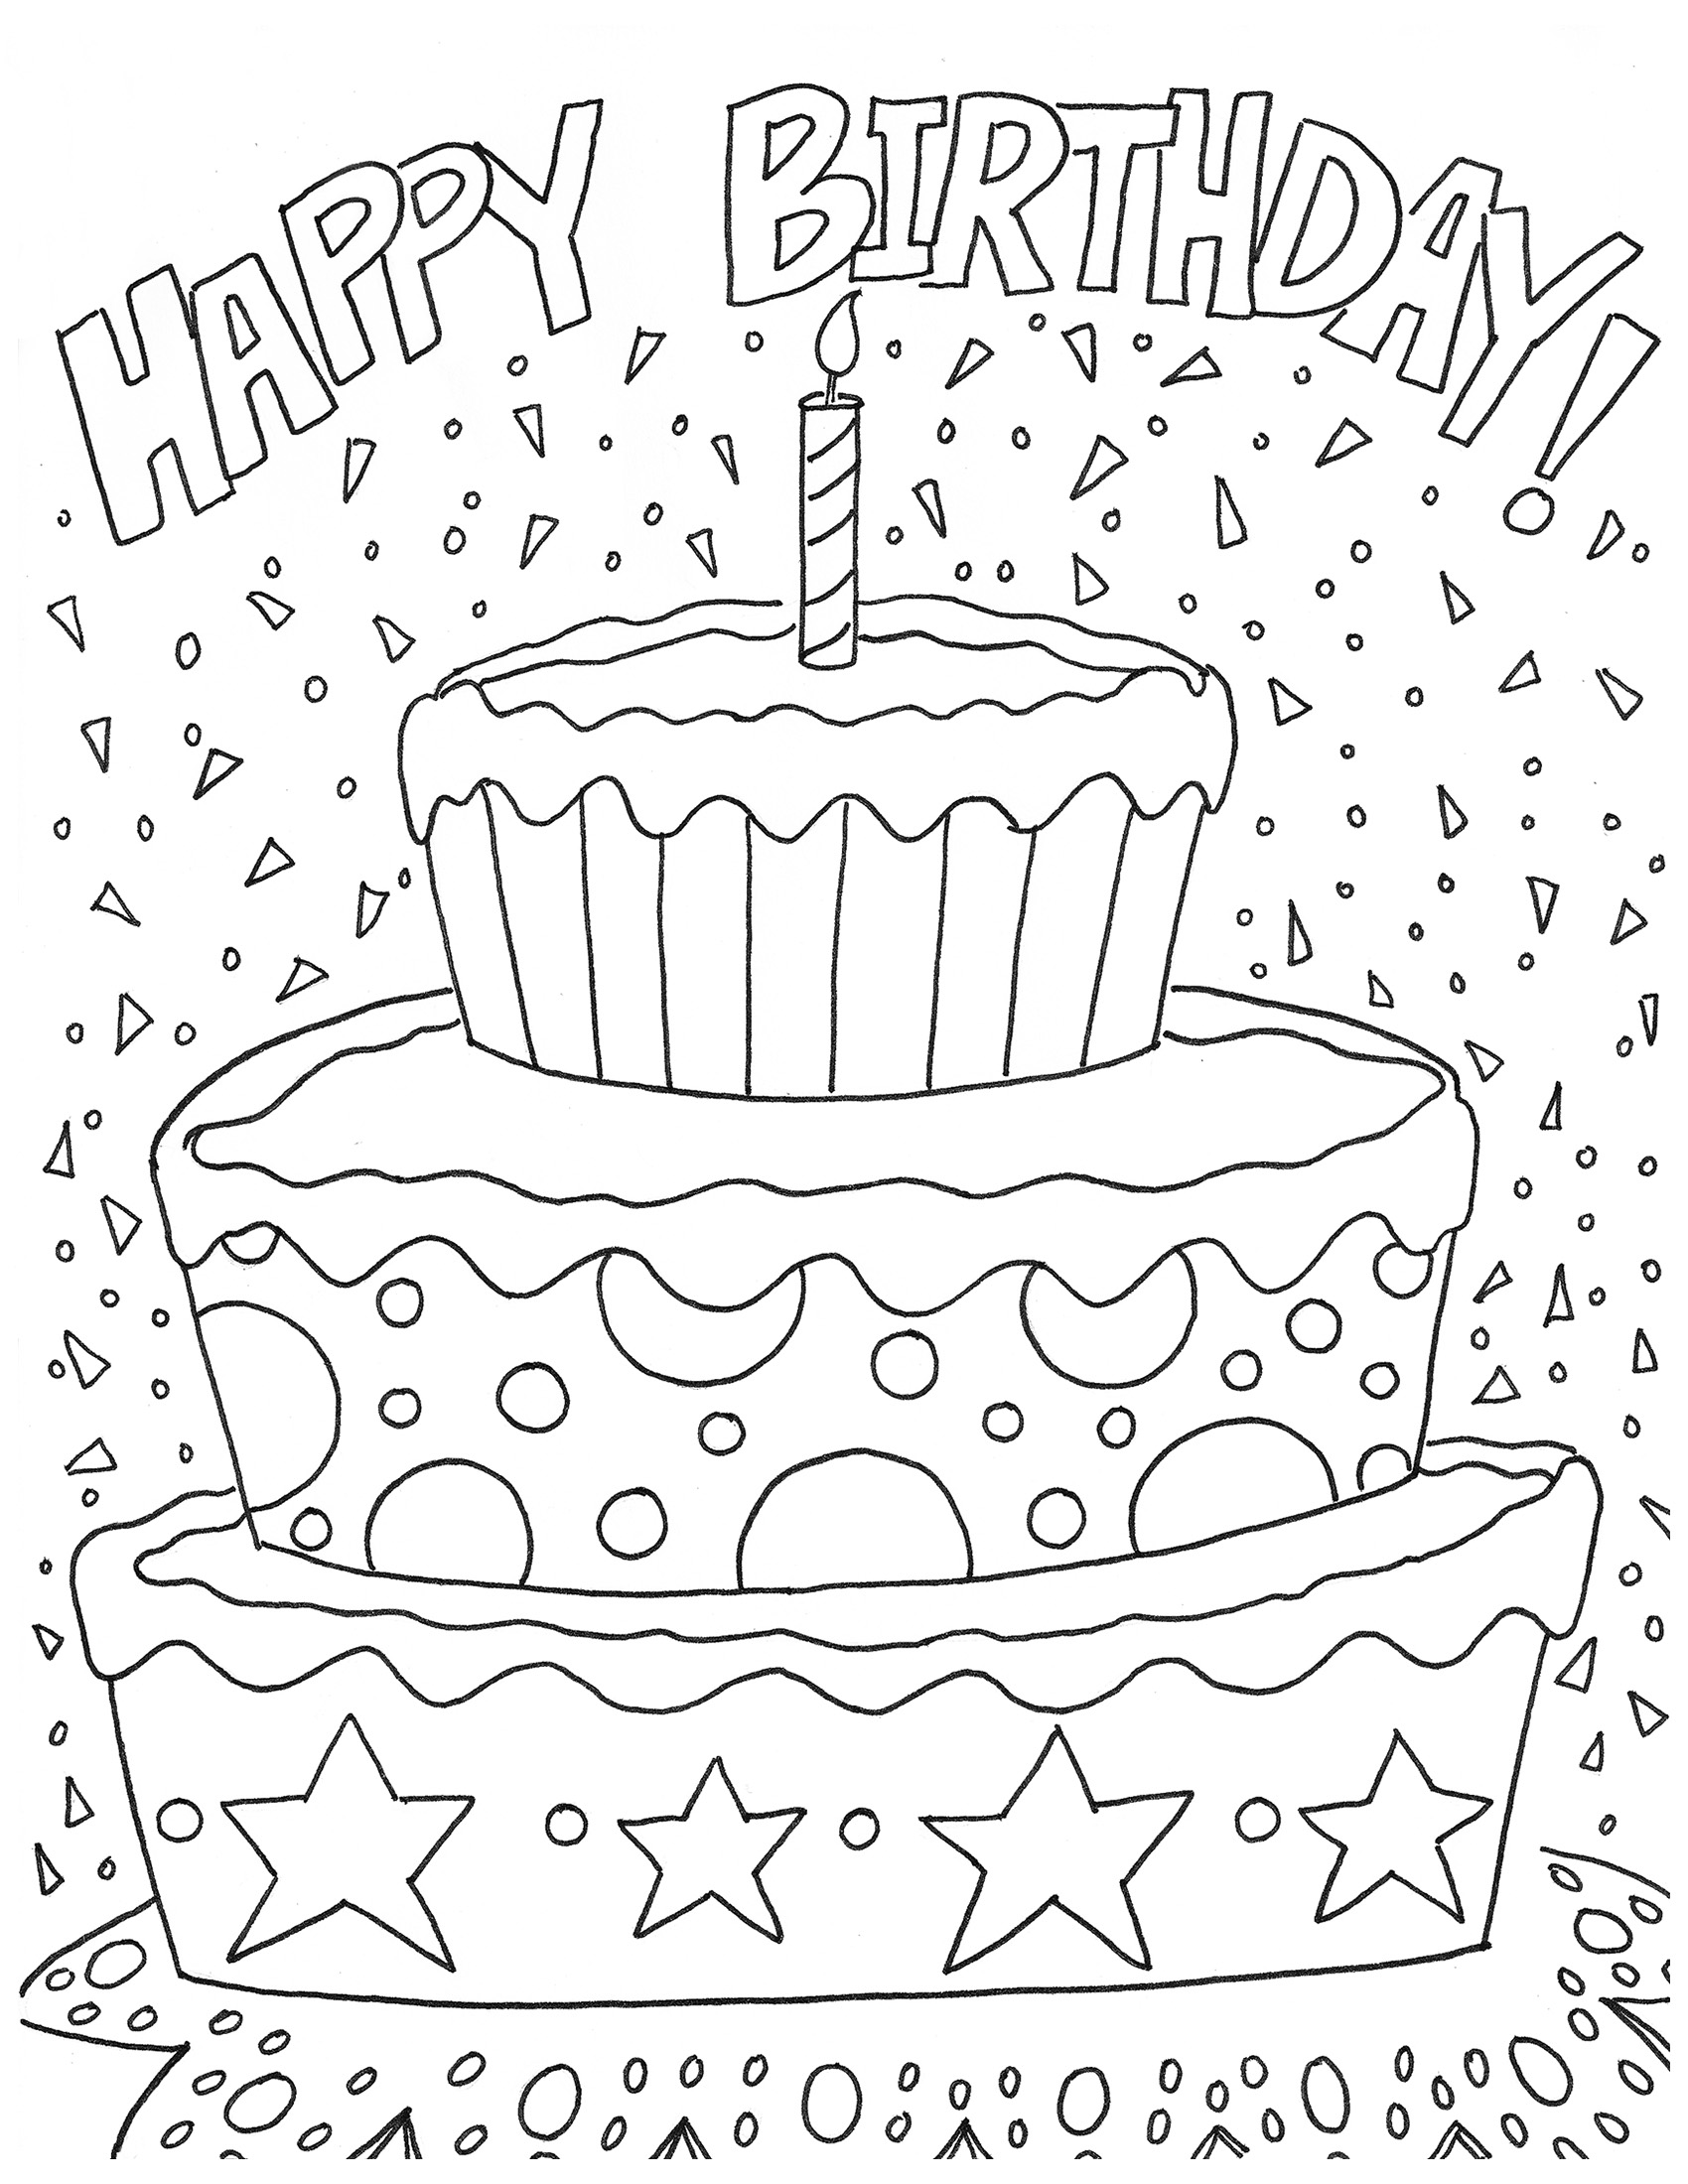 Pokemon happy birthday coloring pages - Happy Birthday Dinosaur Coloring Pages Download And Print The Free Happy Birthday Coloring Page Here